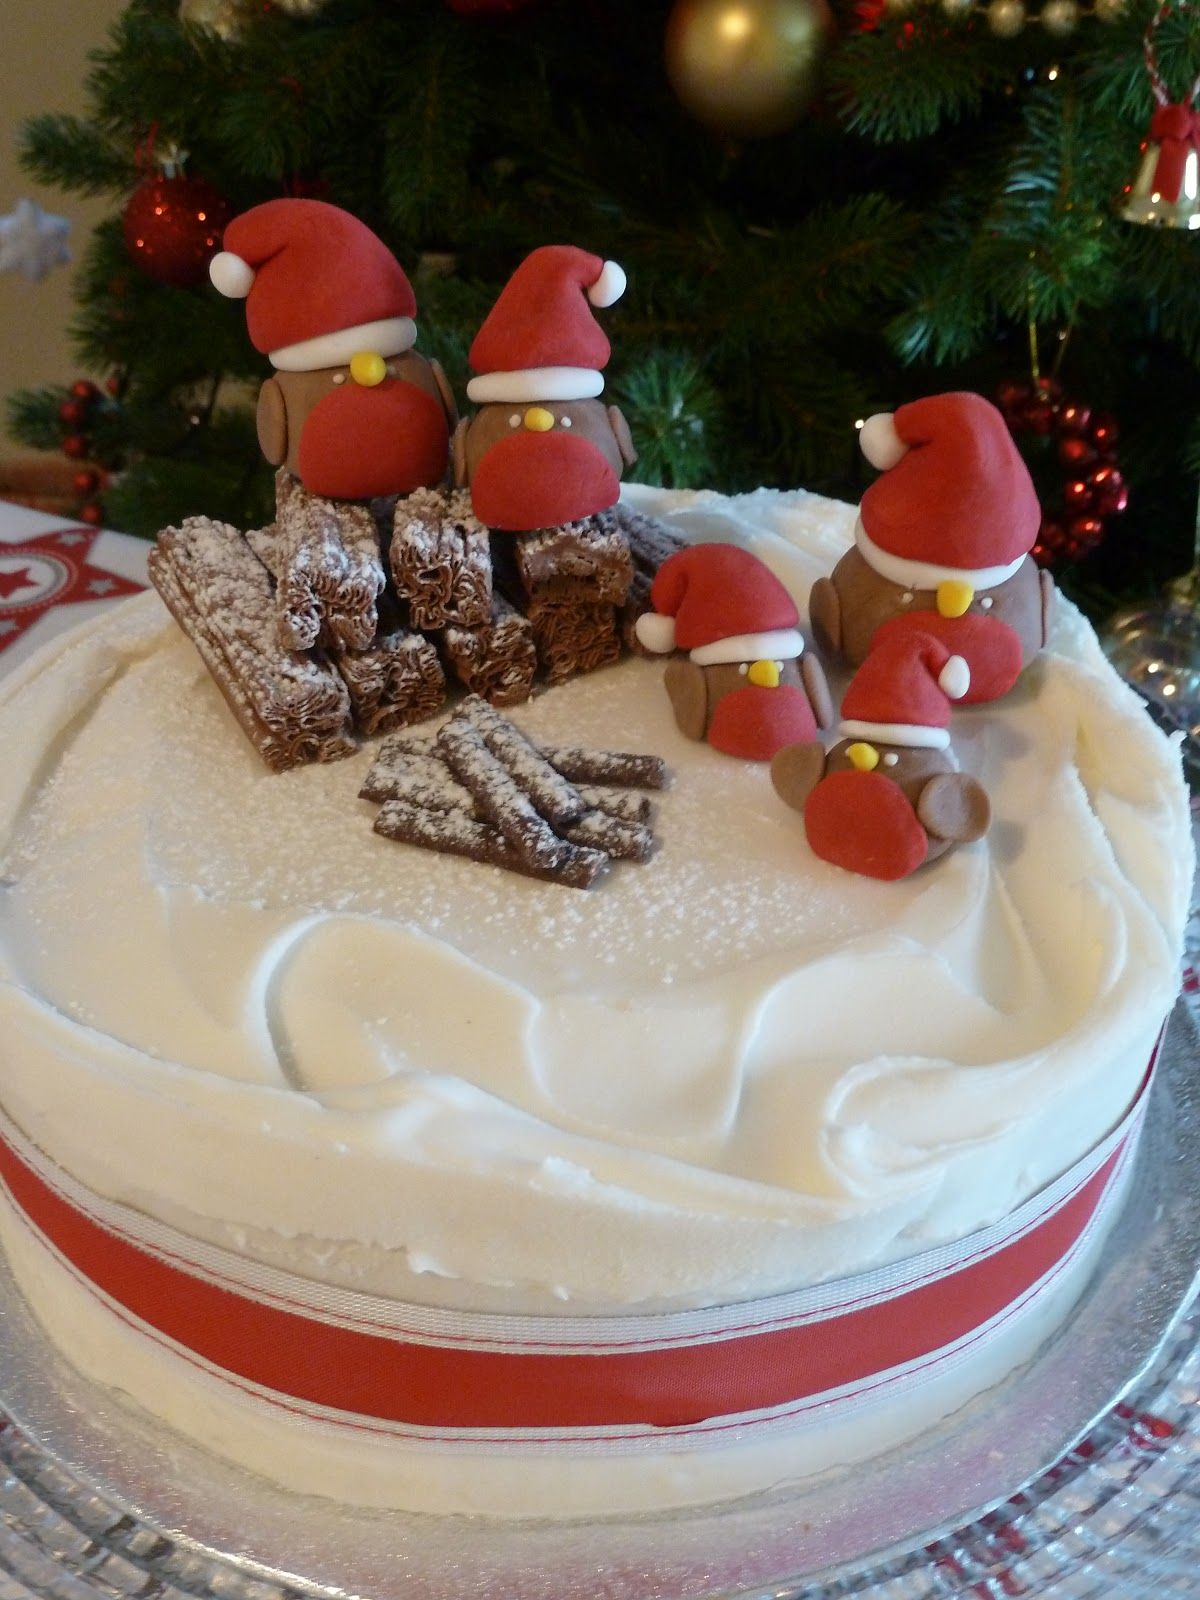 Easy Christmas Cake decoration ideas inspiration. Sugar